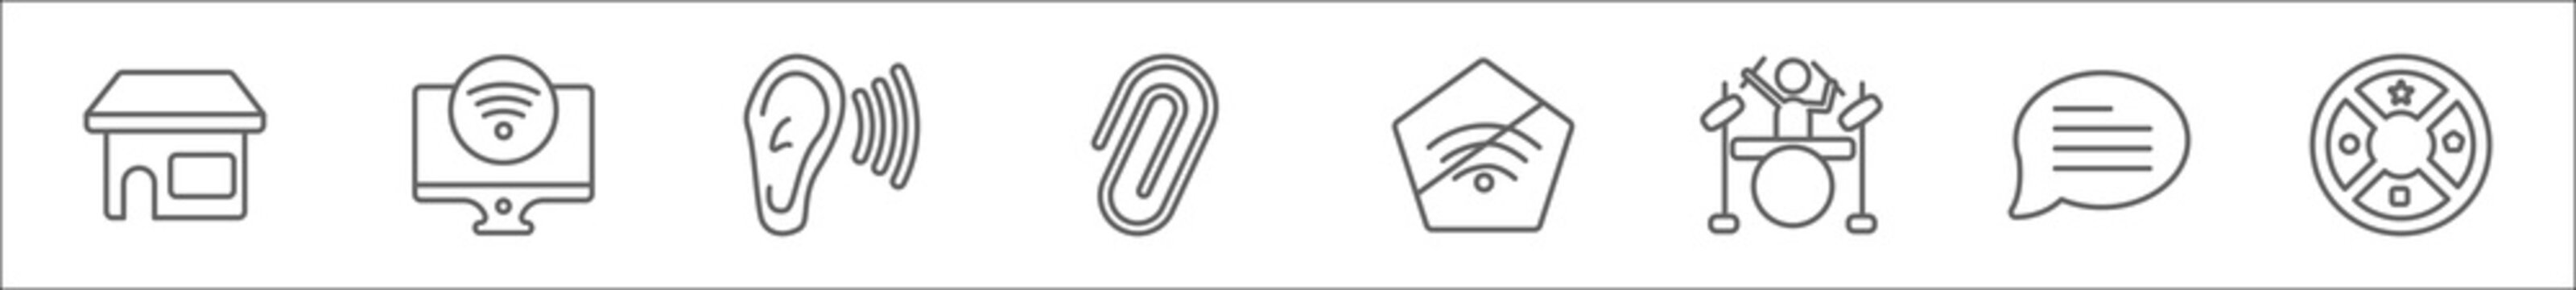 outline set of ultimate glyphicons line icons. linear vector icons such as groceries shop, tv wireless connection, ear with sound bar, attach rotated, internet connections off, band, message